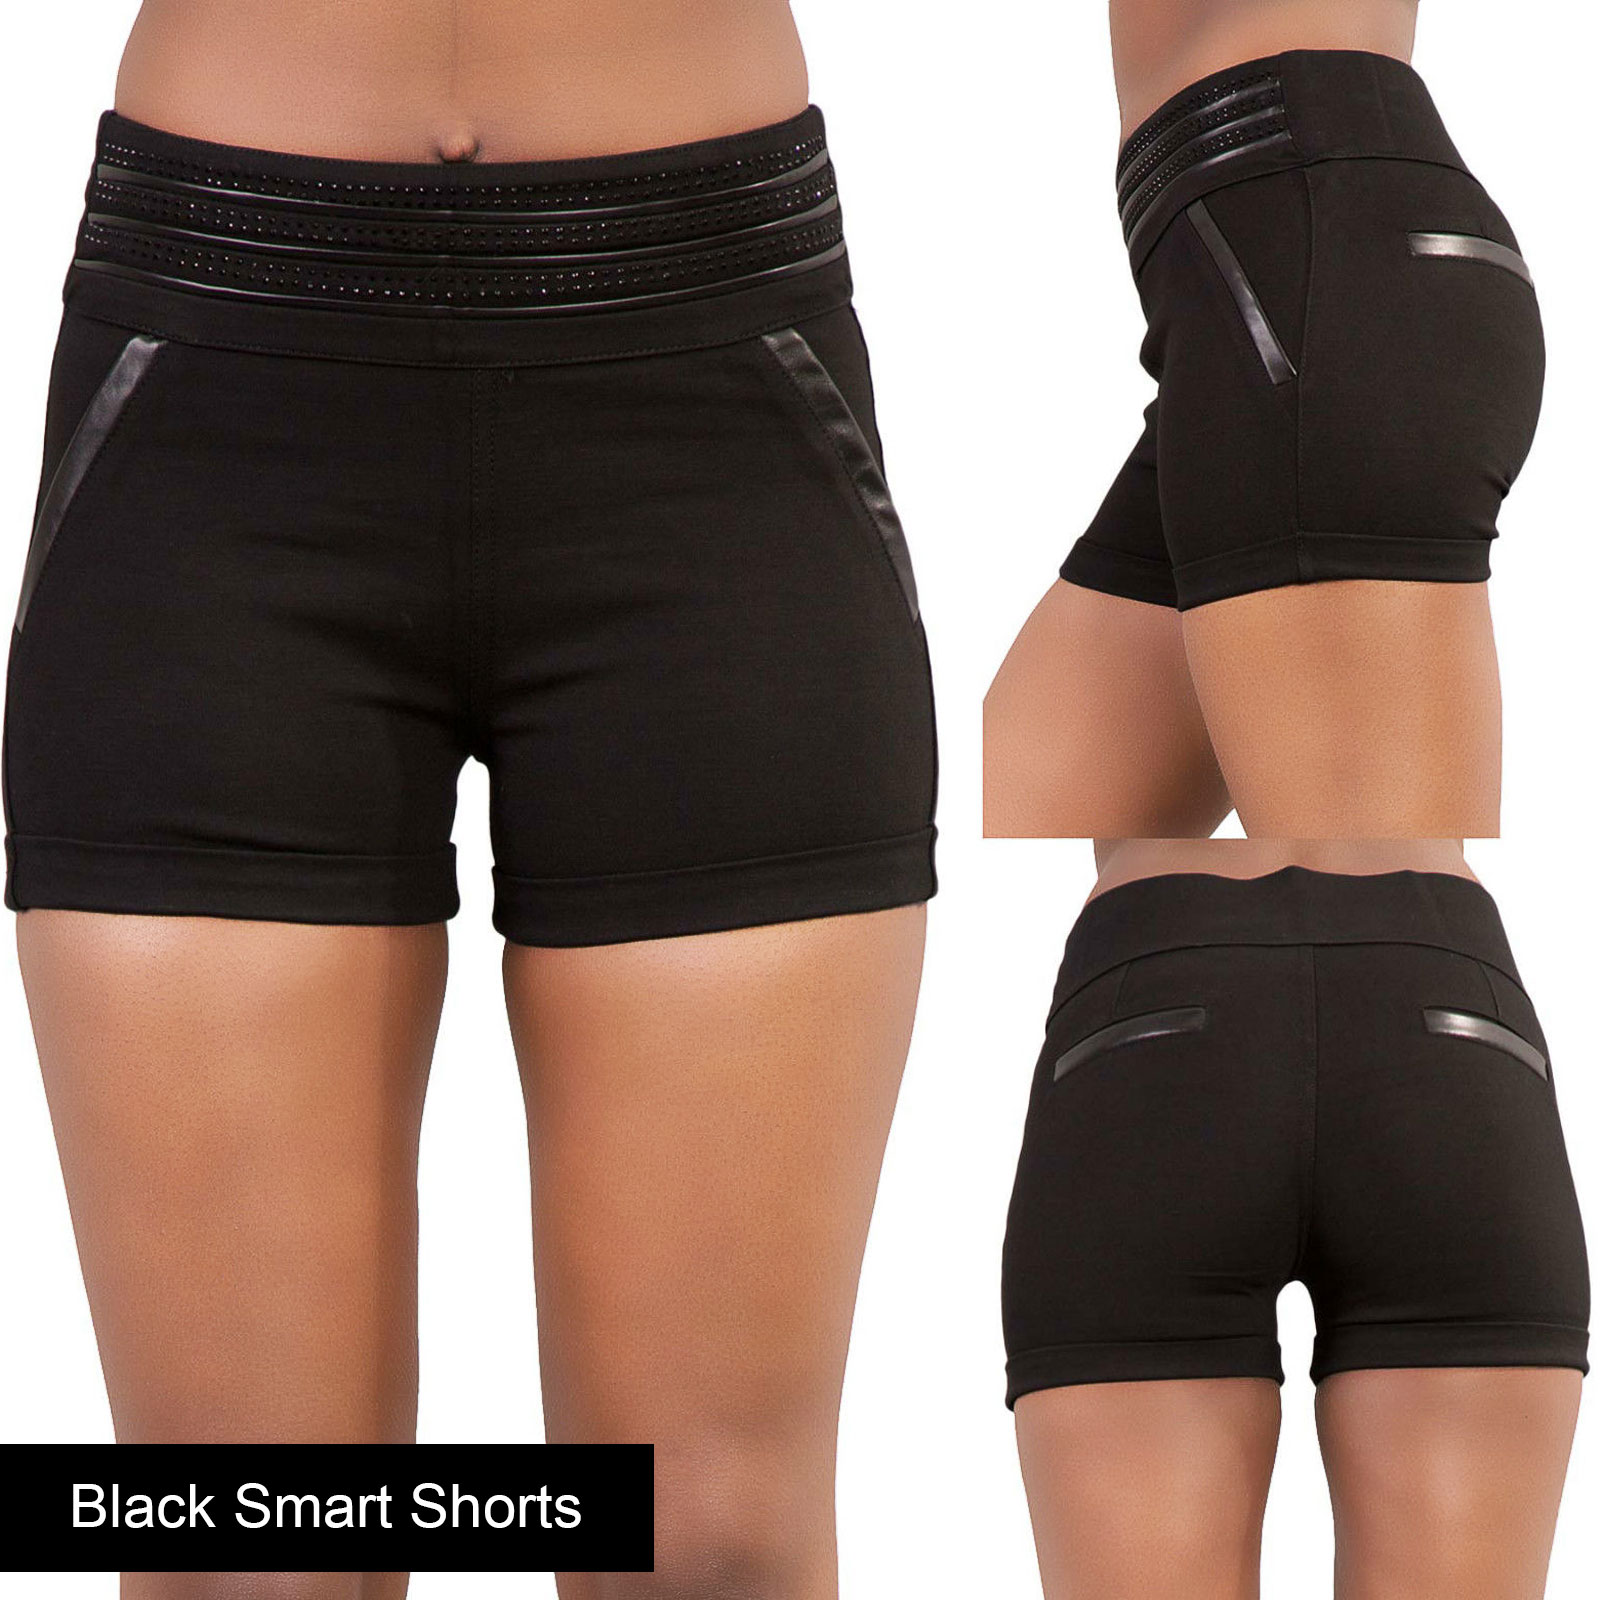 Store Finder. Track Orders Reorder Items Credit Card Help Grocery Pickup. Junior's High Waisted Shorts. invalid category id. Junior's High Waisted Shorts. Showing 48 of results that match your query. Search Product Result. Product - Juniors' Ruched Belted Shorts. Best Seller.